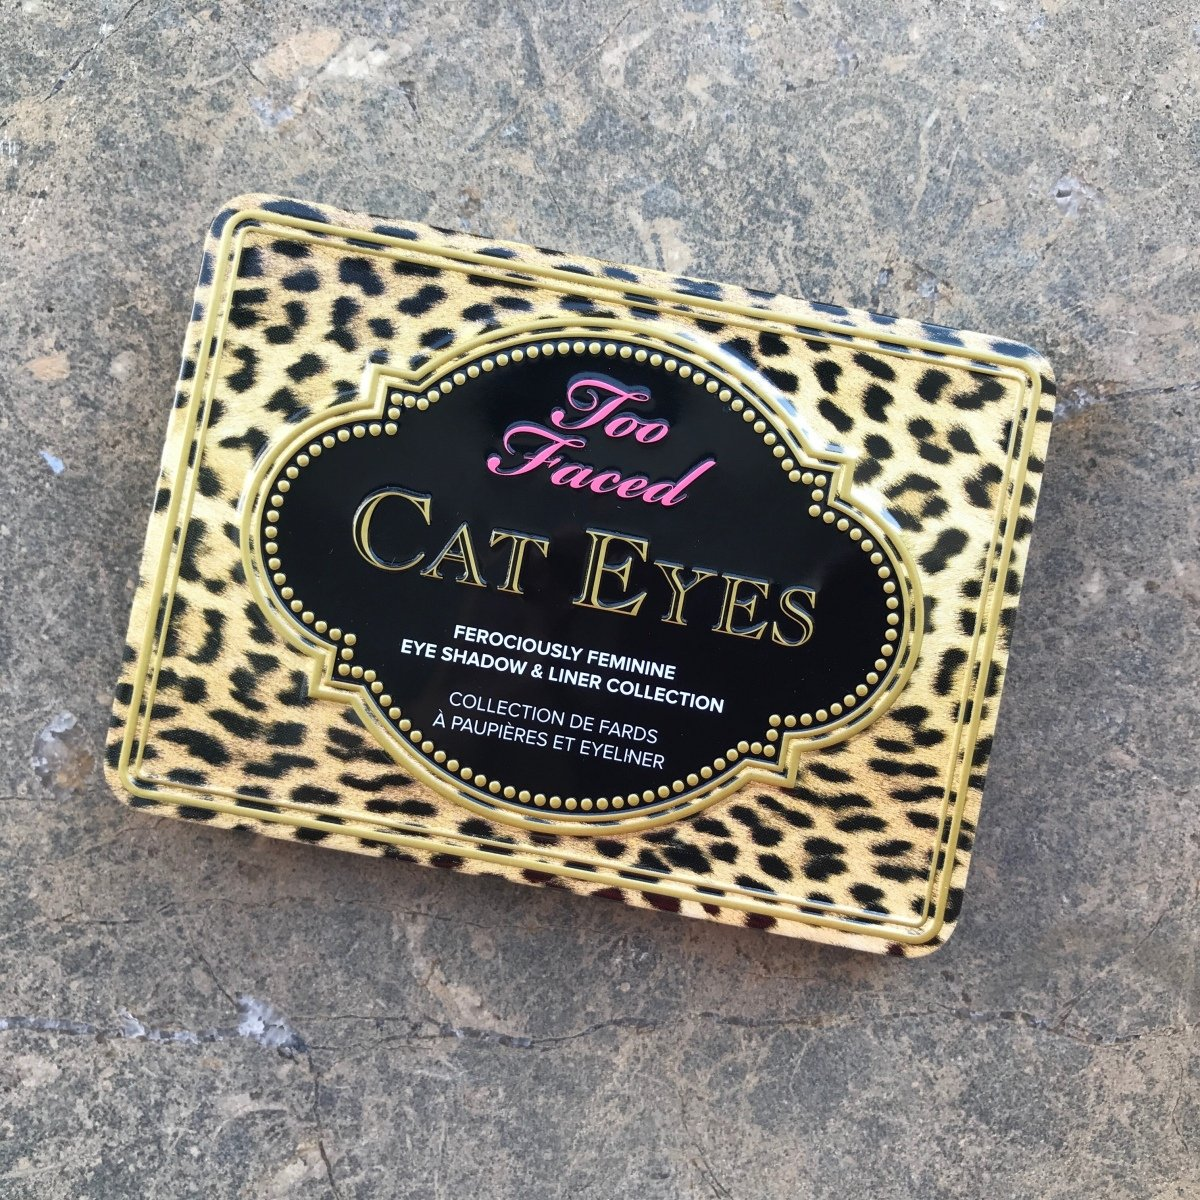 Too Faced Cat Eyes Eye Shadow Liner Collection